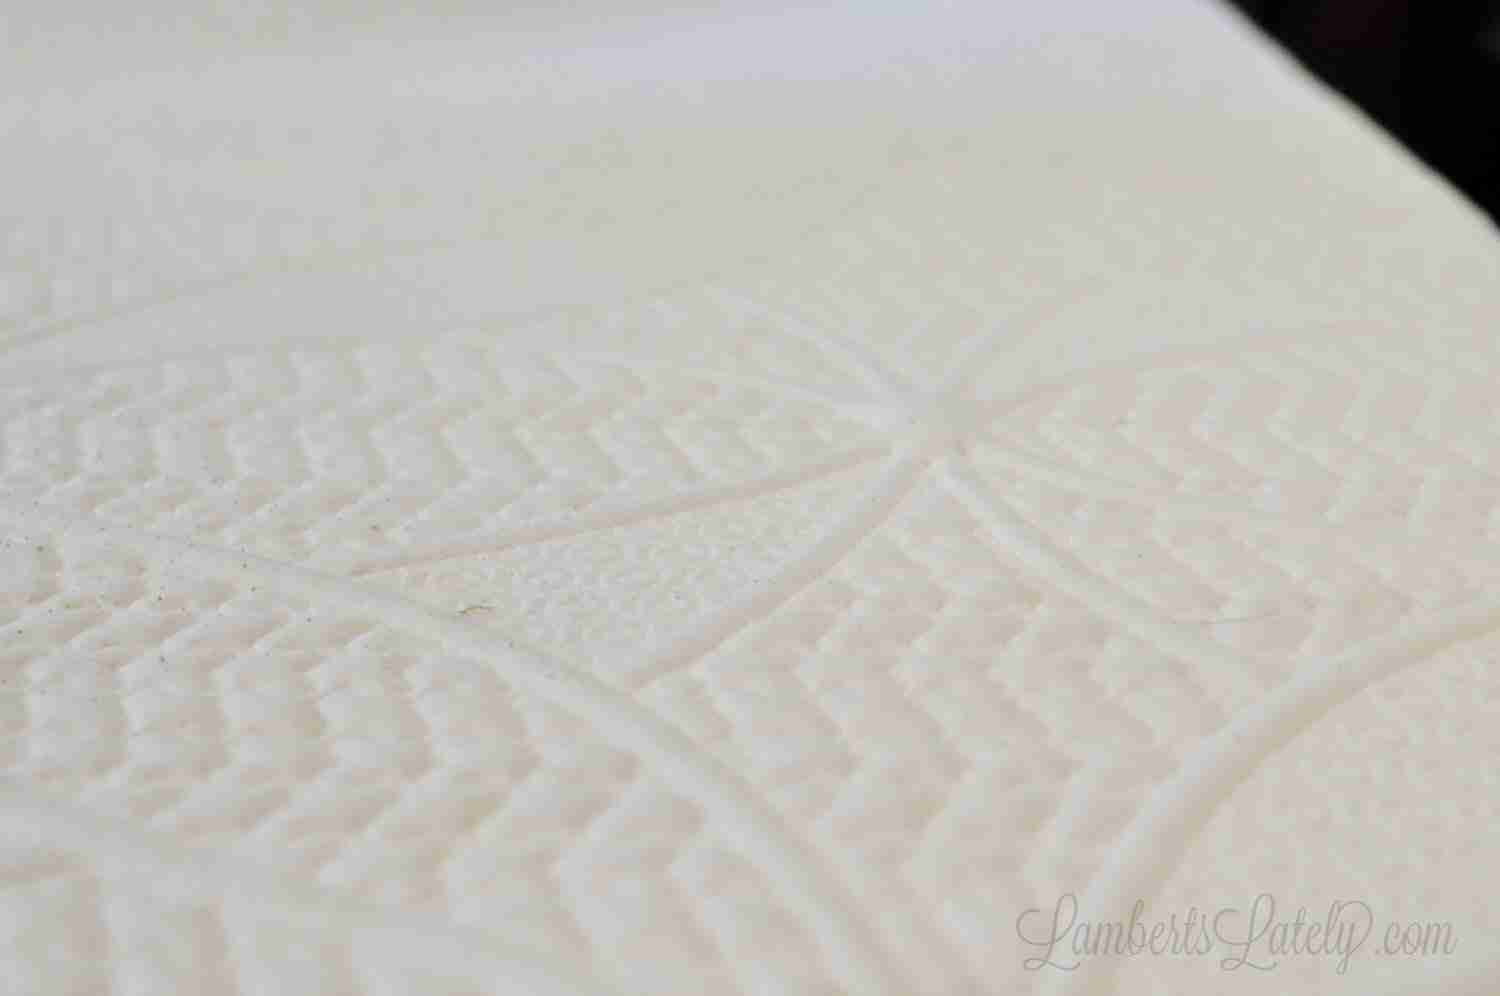 This post shows how to eliminate stains and smells from mattresses using common ingredients like baking soda. See how to clean a mattress the effective way!